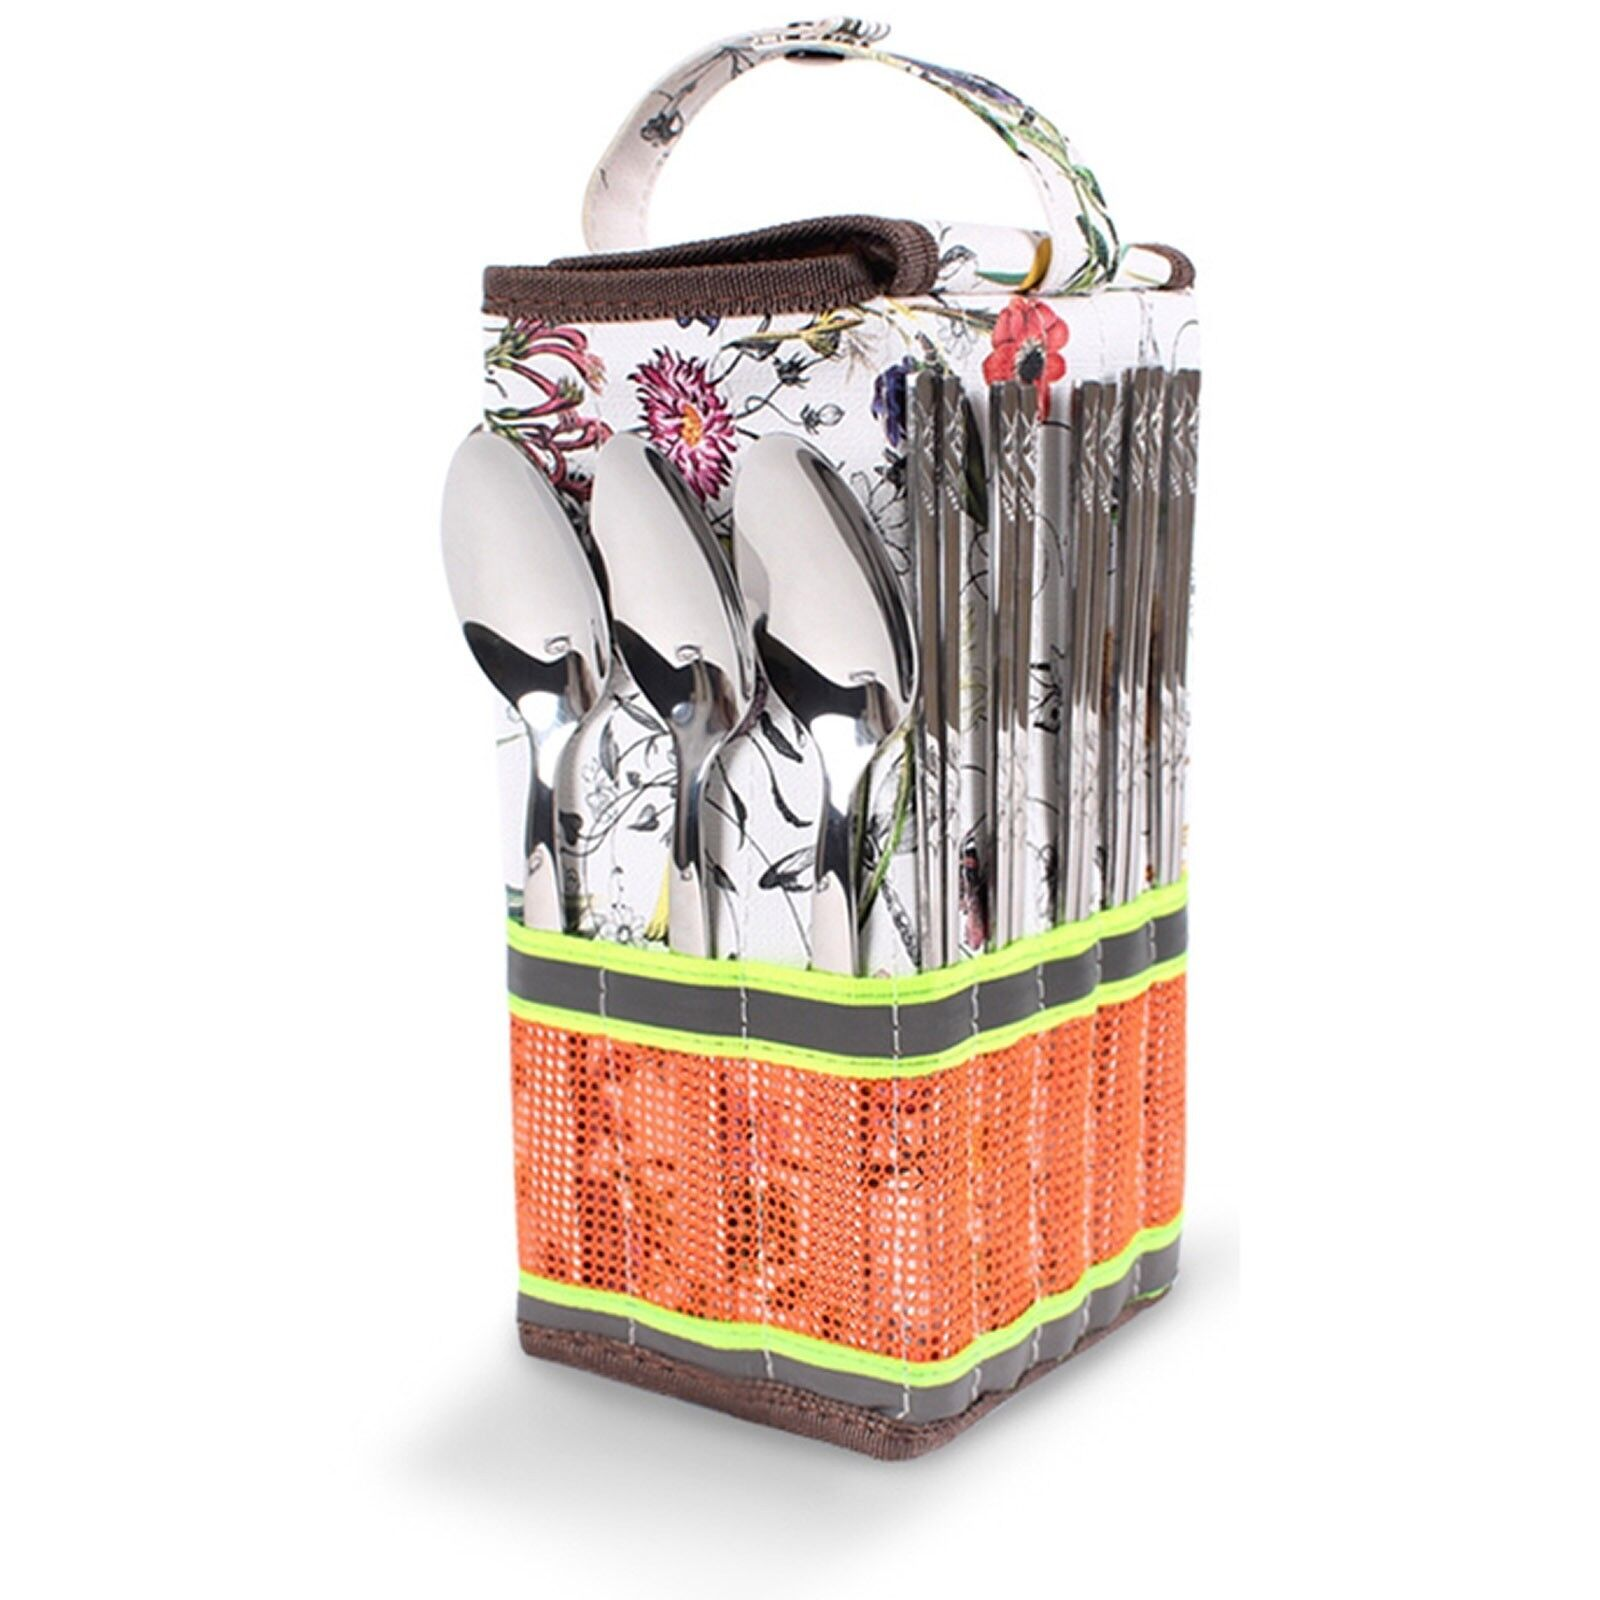 Camping Stainless steel Flower Cutlery 15P SET Camp fishing hiking home cooking